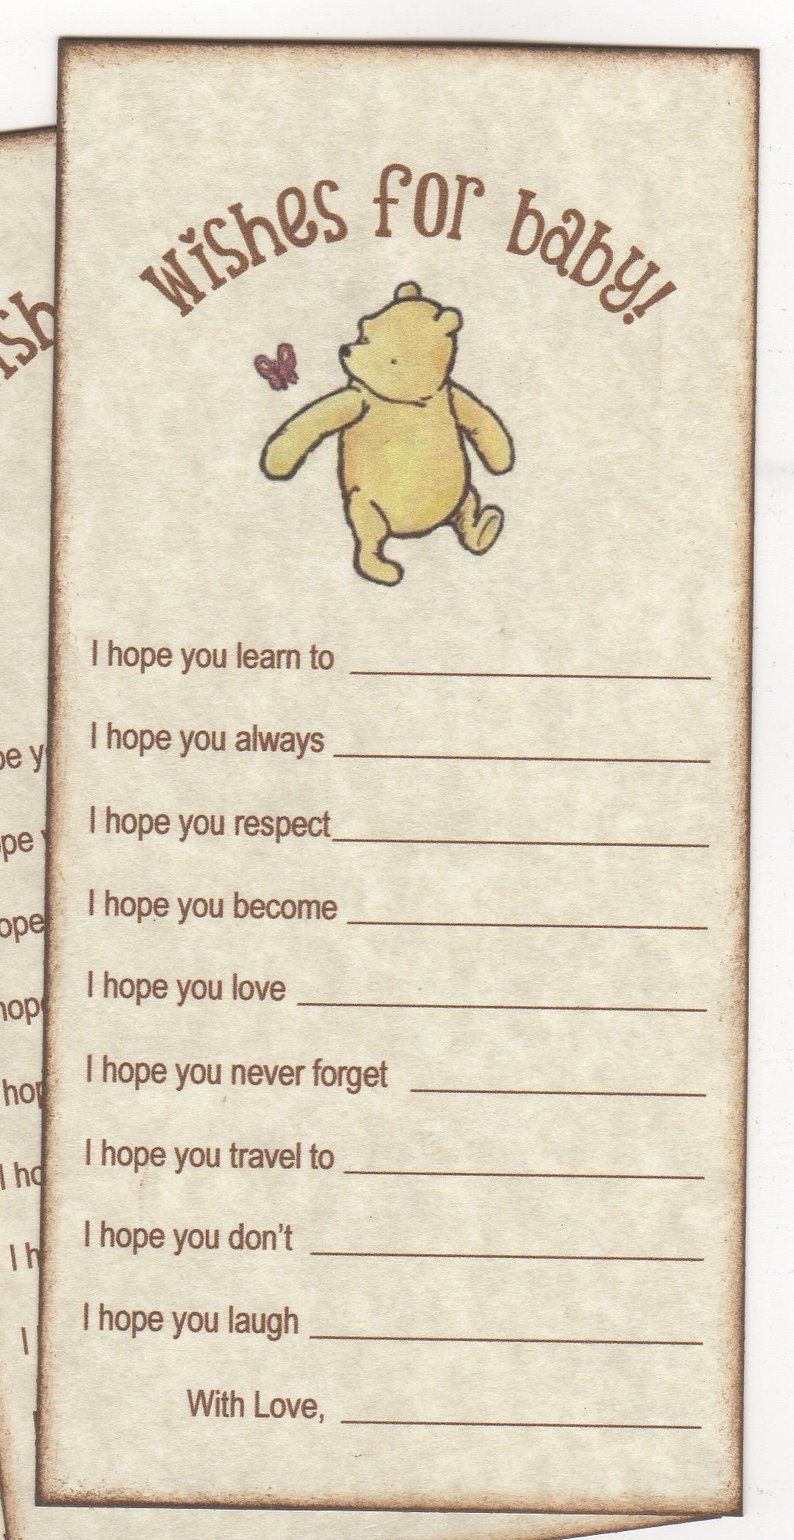 Winnie The Pooh Baby Shower Quotes : winnie, shower, quotes, Classic, Winnie, Shower, Wishes, Advice, Cards, Wishes,, Disney, Shower,